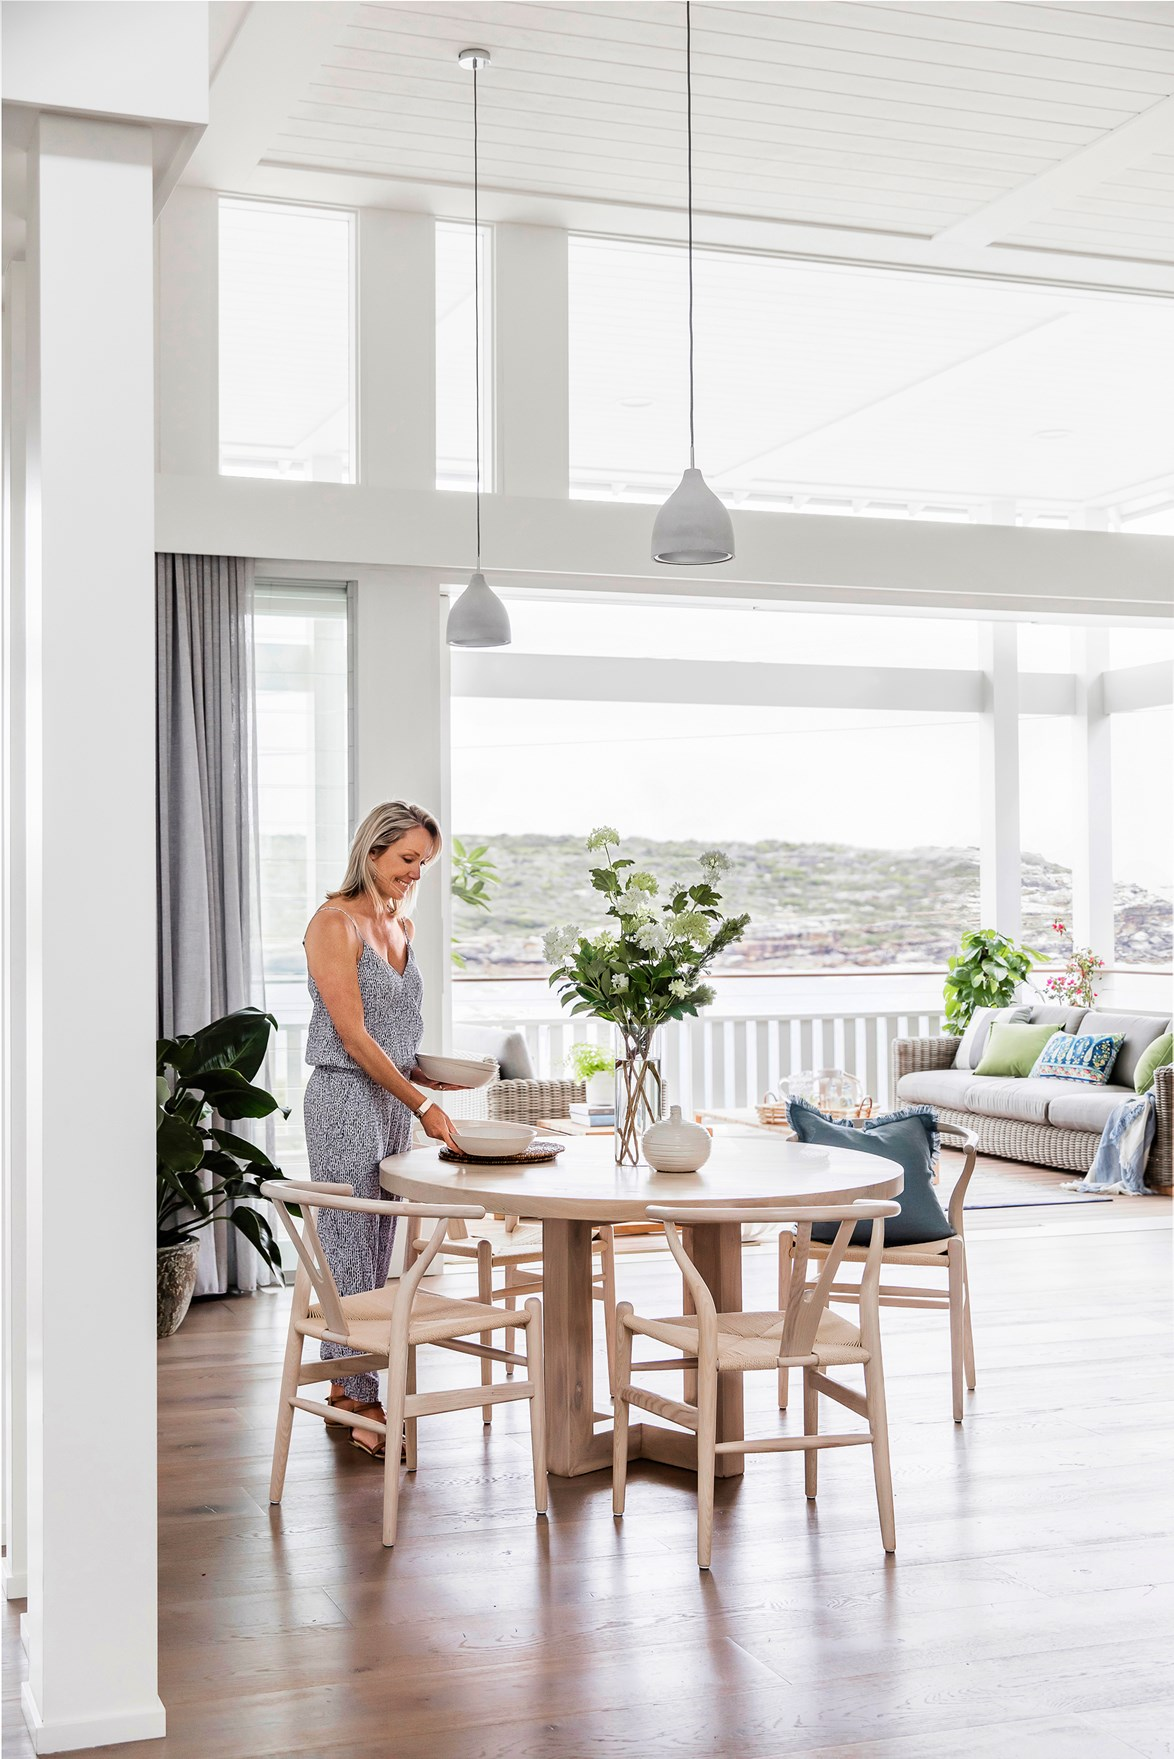 "After knocking down their 1950s cottage, the owners of this **seaside Sydney home** started afresh, building this magnificent Hamptons-style abode with the same picturesque views. [Take a tour >](http://www.homestolove.com.au/coastal-style-an-airy-new-build-in-sydney-4577|target=""_blank"")"